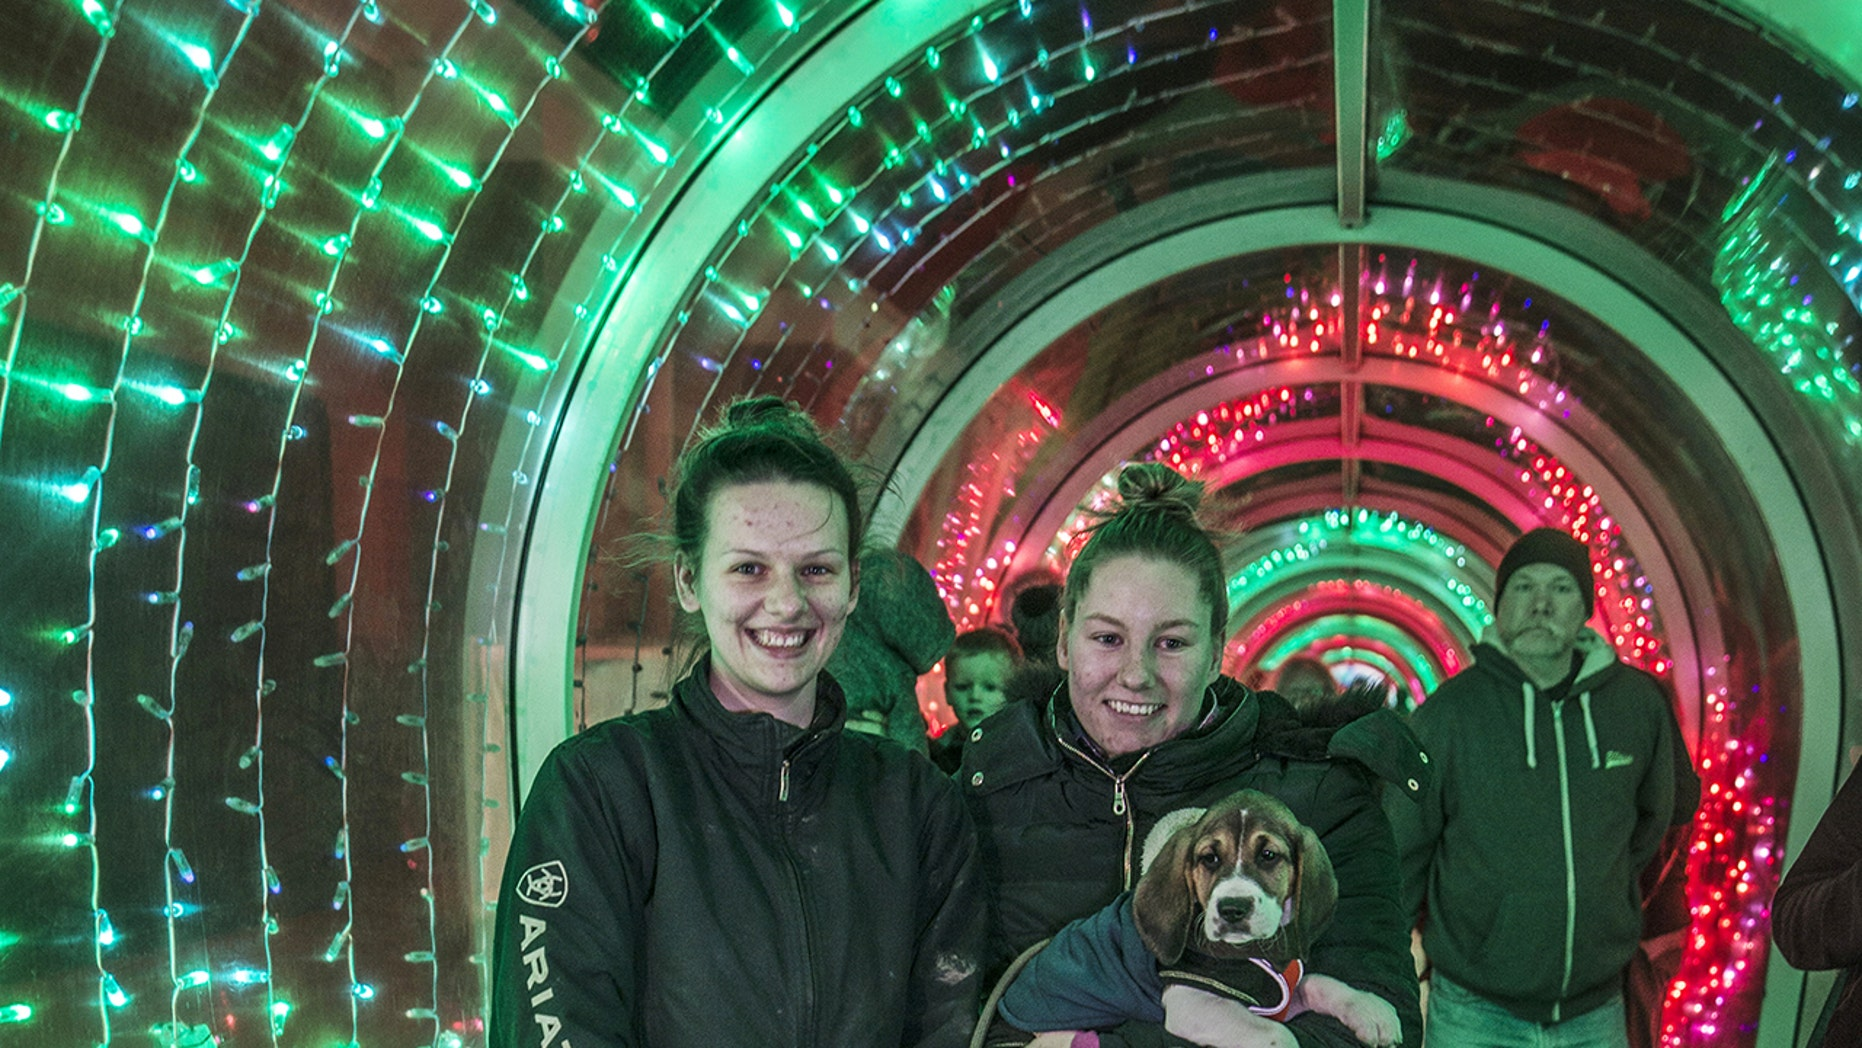 Celina Stone popped the question to her girlfriend, Jade Euden, inside the unlikely tourist attraction.